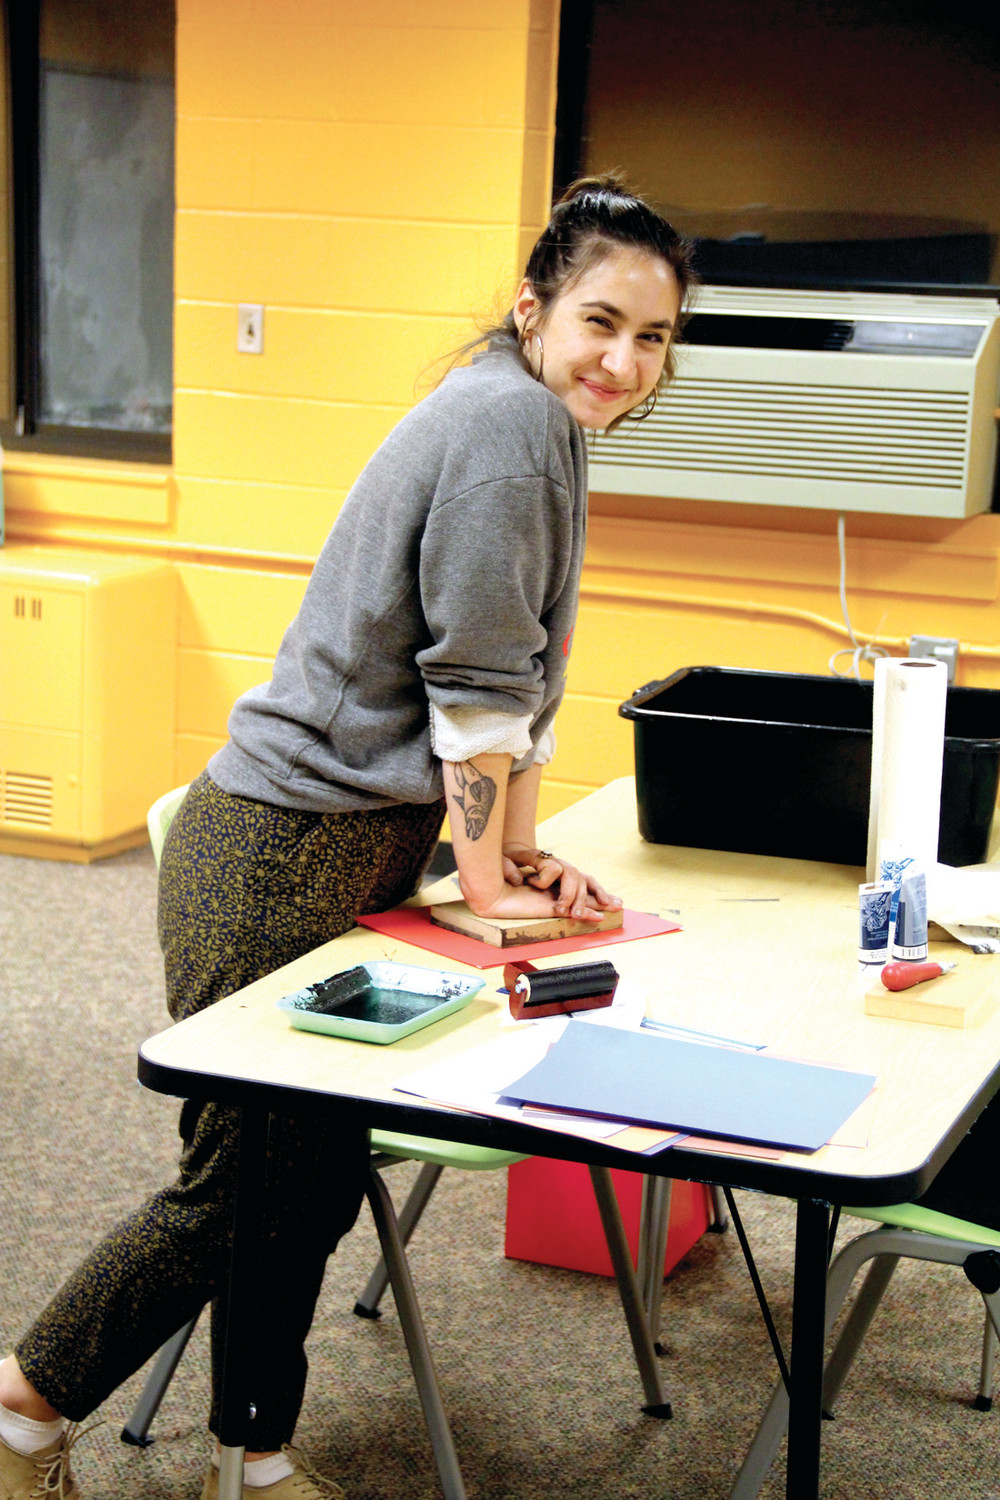 ART IN THE MAKING: Rachel Abimerhi, who will be teaching art at the new club, demonstrates doing a woodprint.